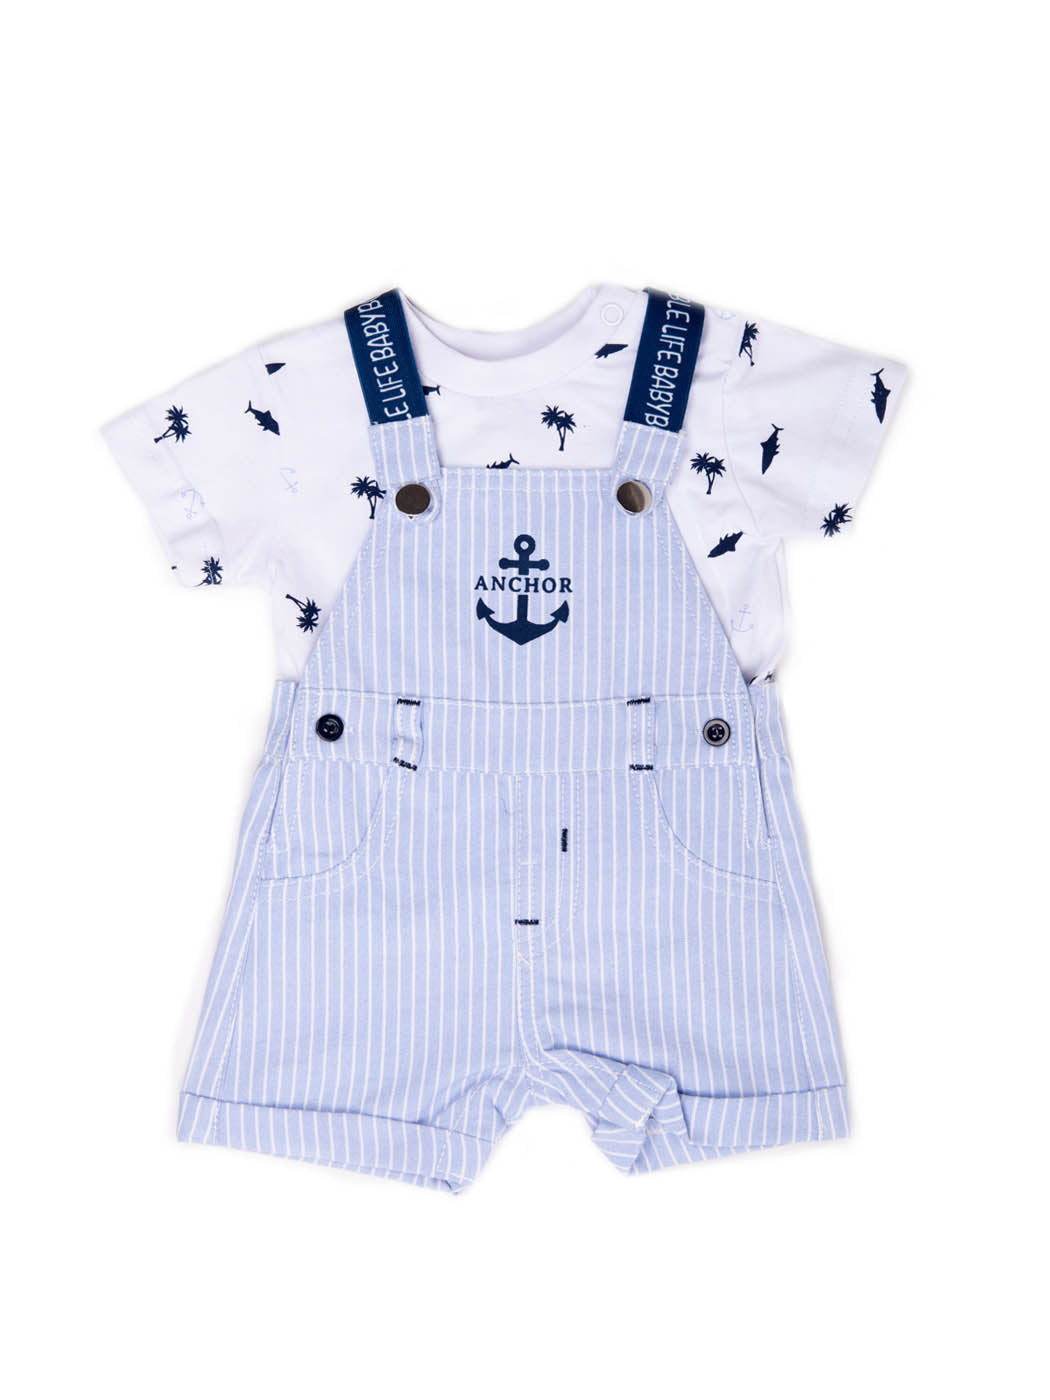 Baby Outfit 2pcs Art. 11254